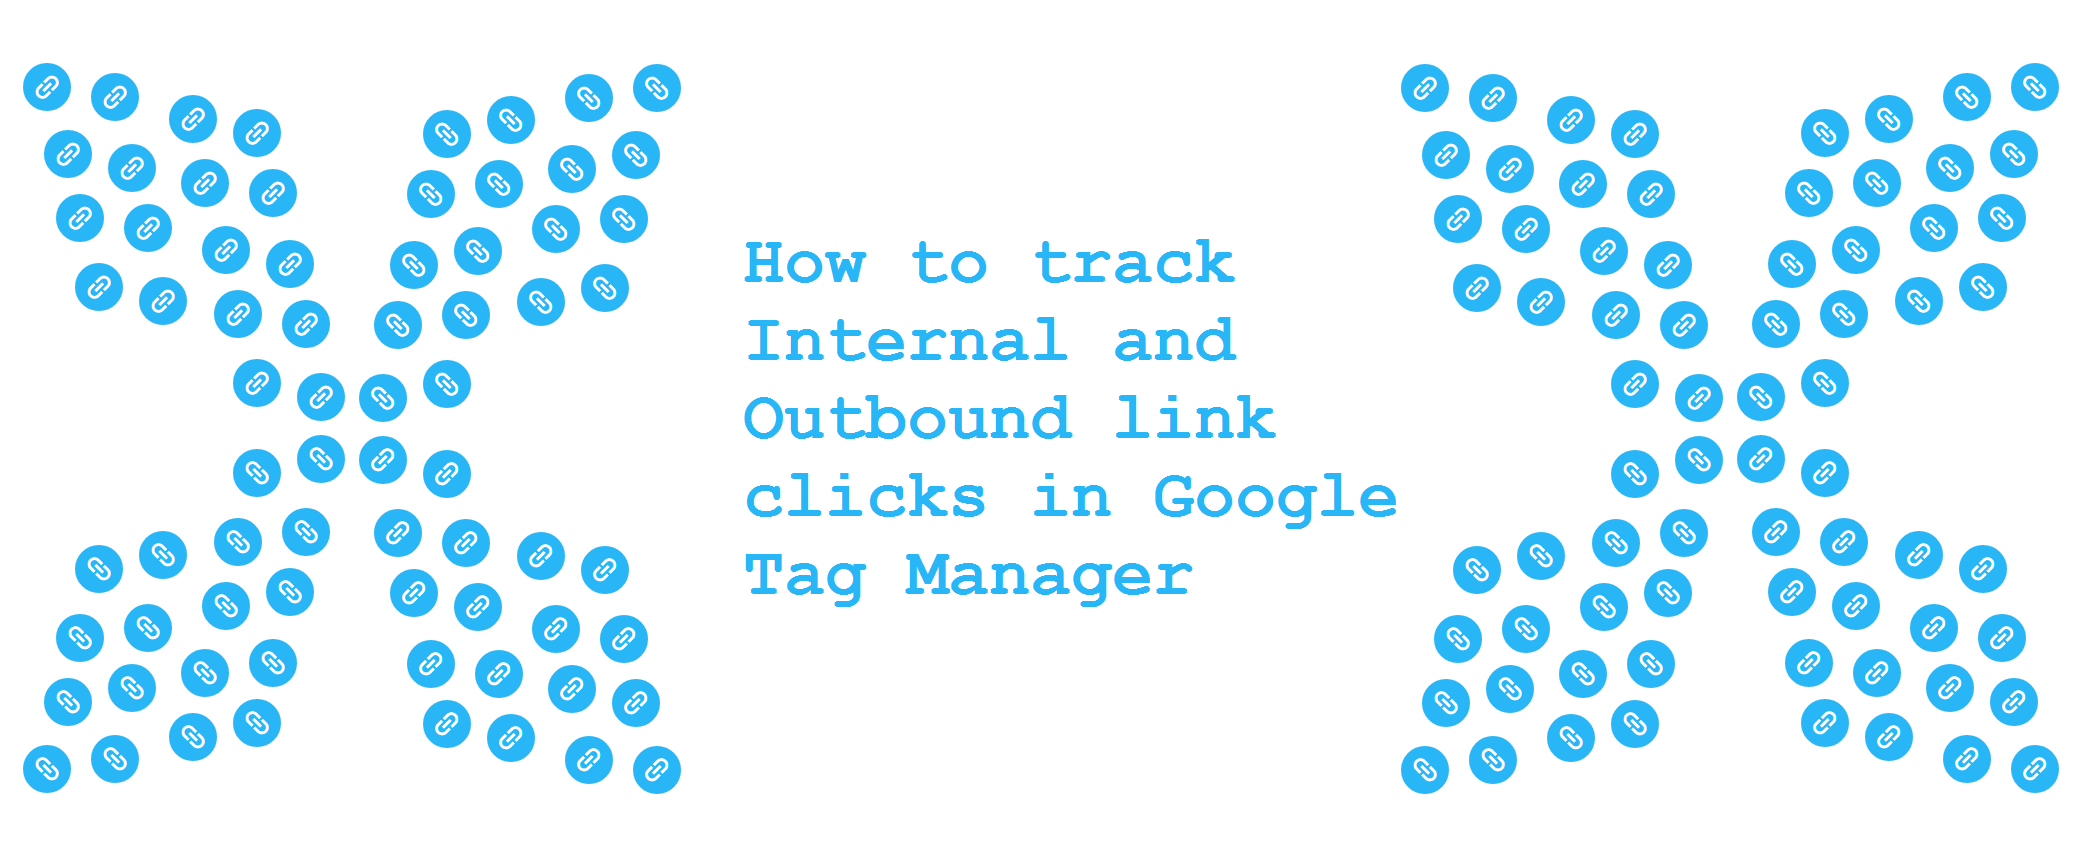 How to track Internal and Outbound link clicks in Google Tag Manager